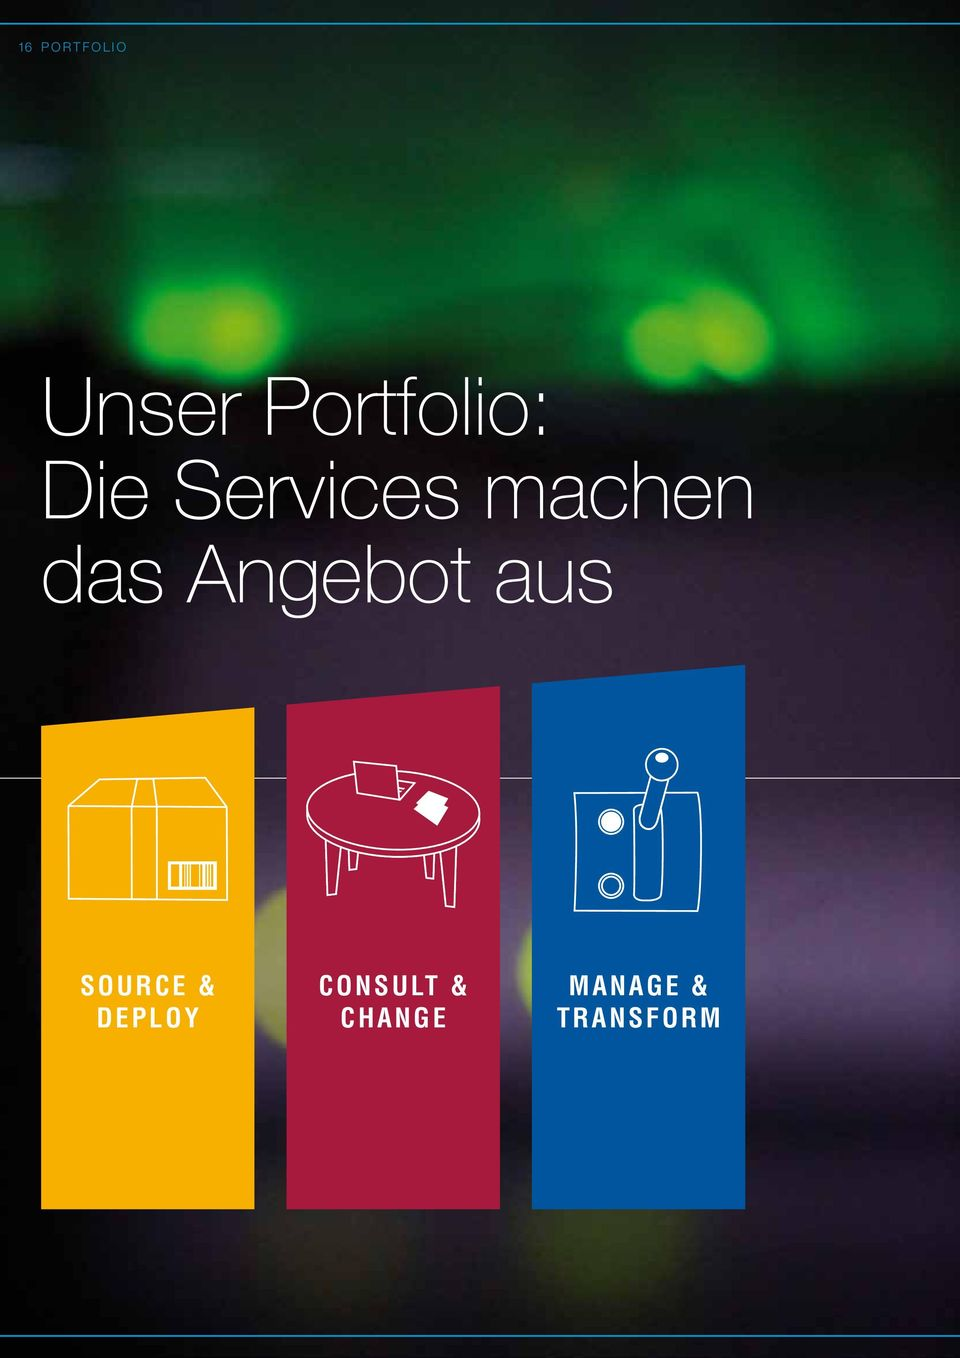 Angebot aus Source & Deploy